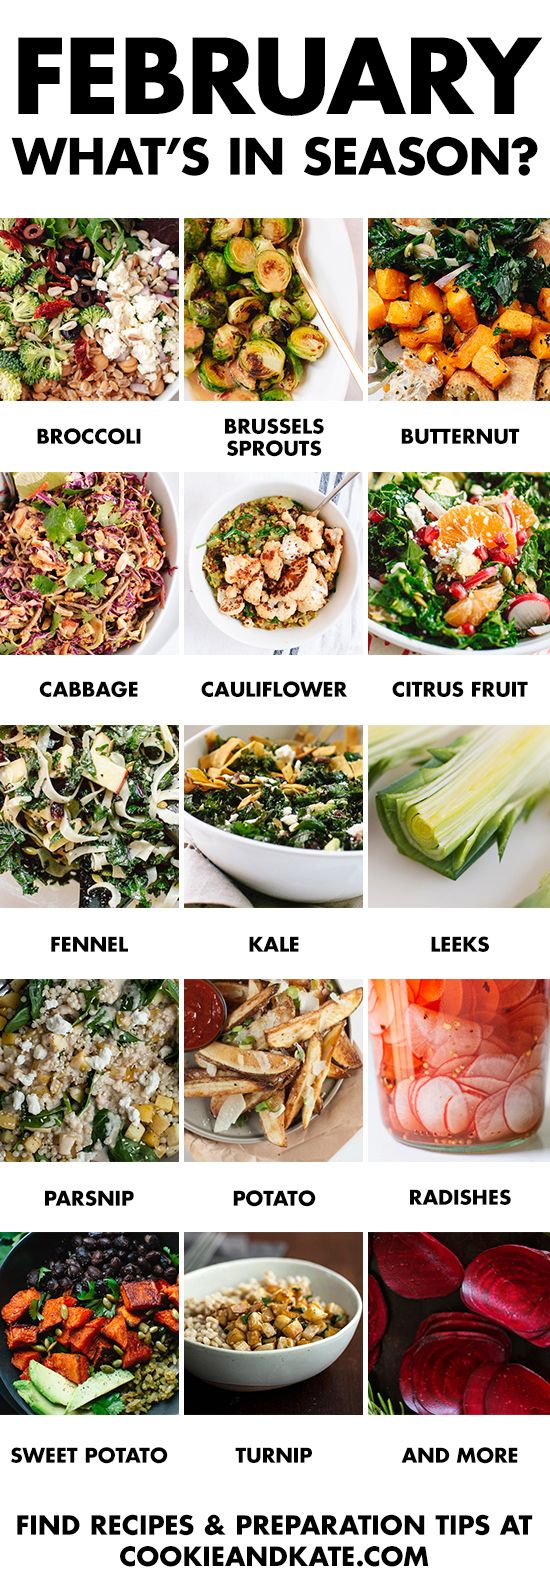 Eat seasonally with this guide to February fruits and vegetables. Find recipes and preparation tips at cookieandkate.com